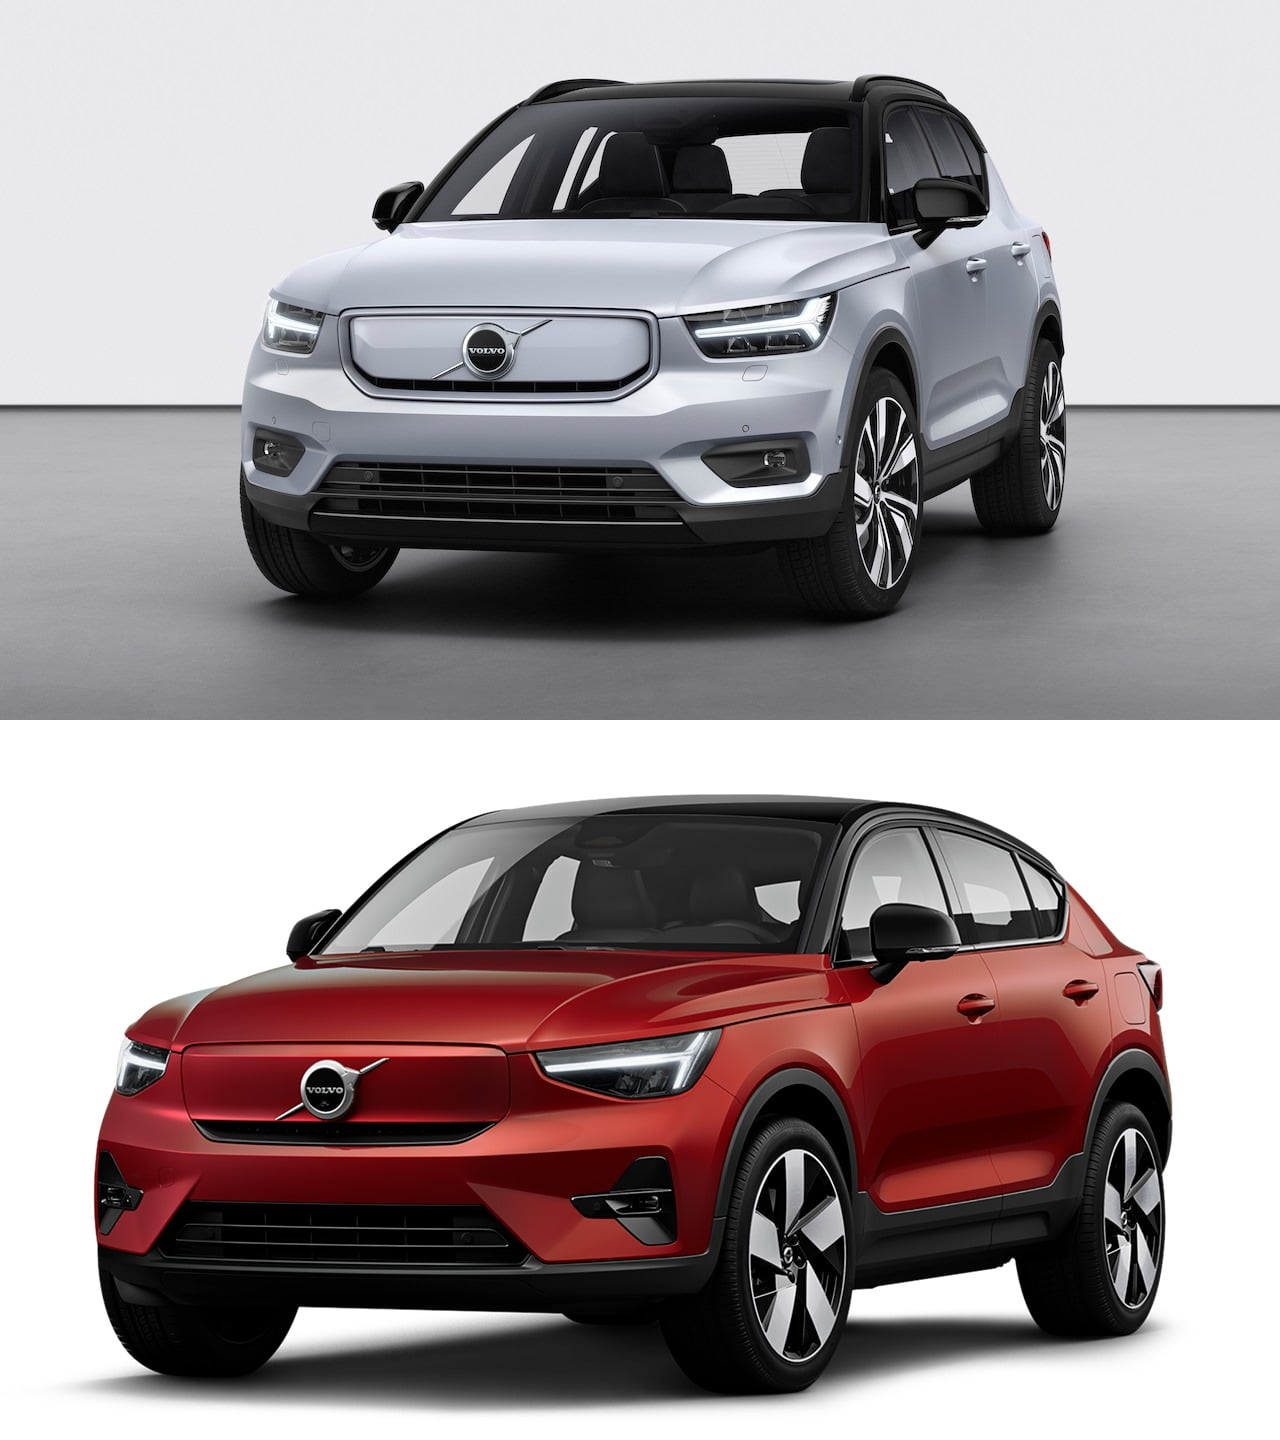 2022 Volvo C40 Recharge vs. XC40 Recharge front quarters